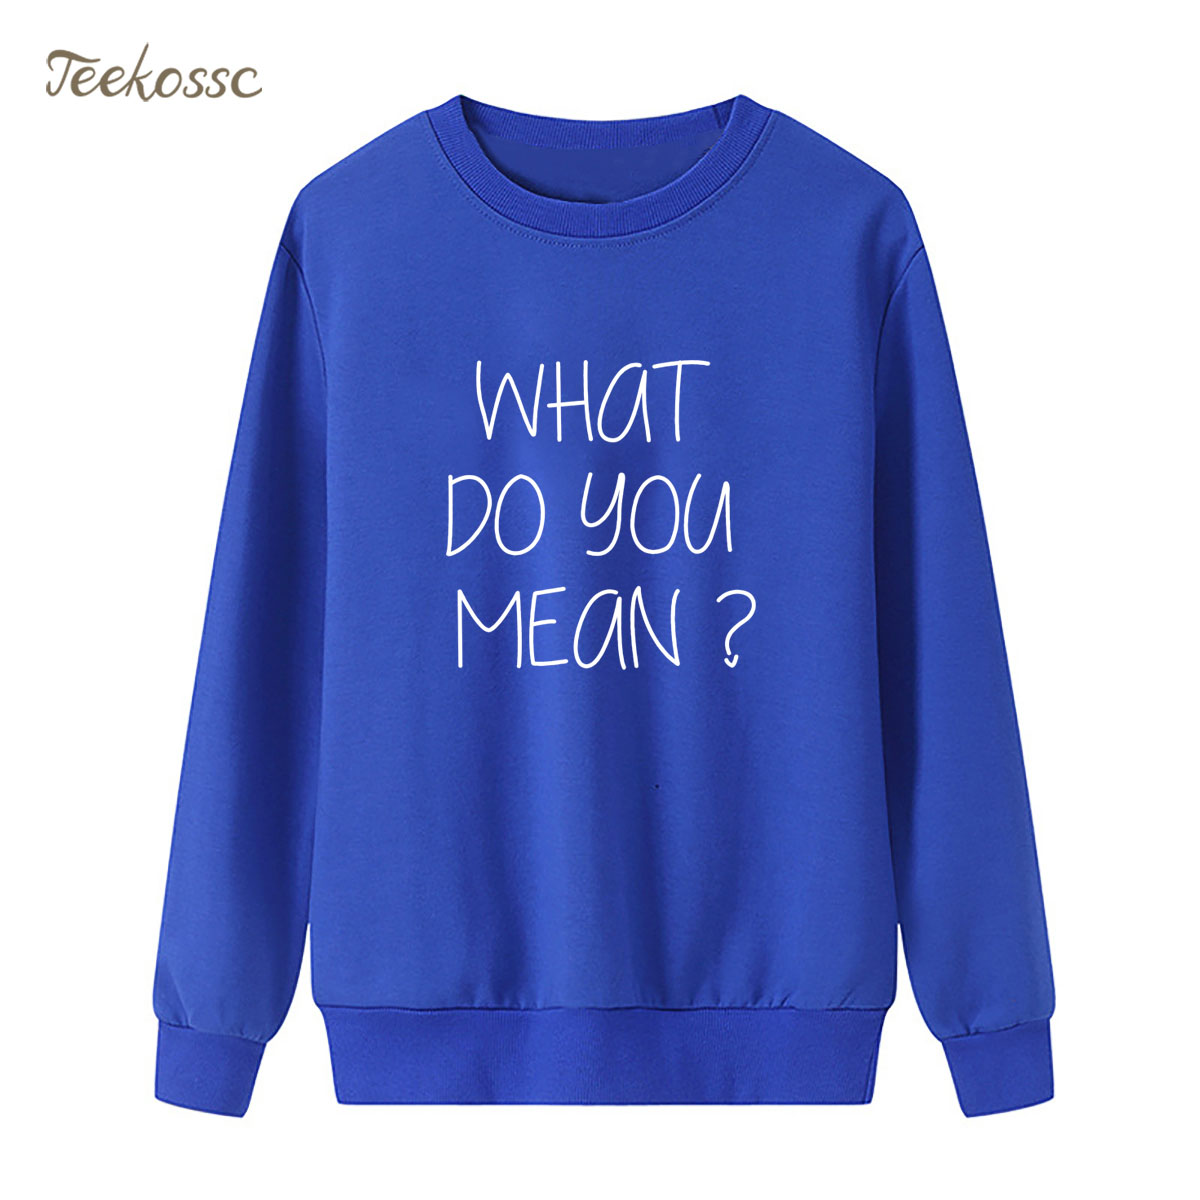 What do you mean Sweatshirt Music Justin Bieber Kpop Hoodie Winter Autumn Women Lasdies Pullover Fleece Punk Rock Streetwear